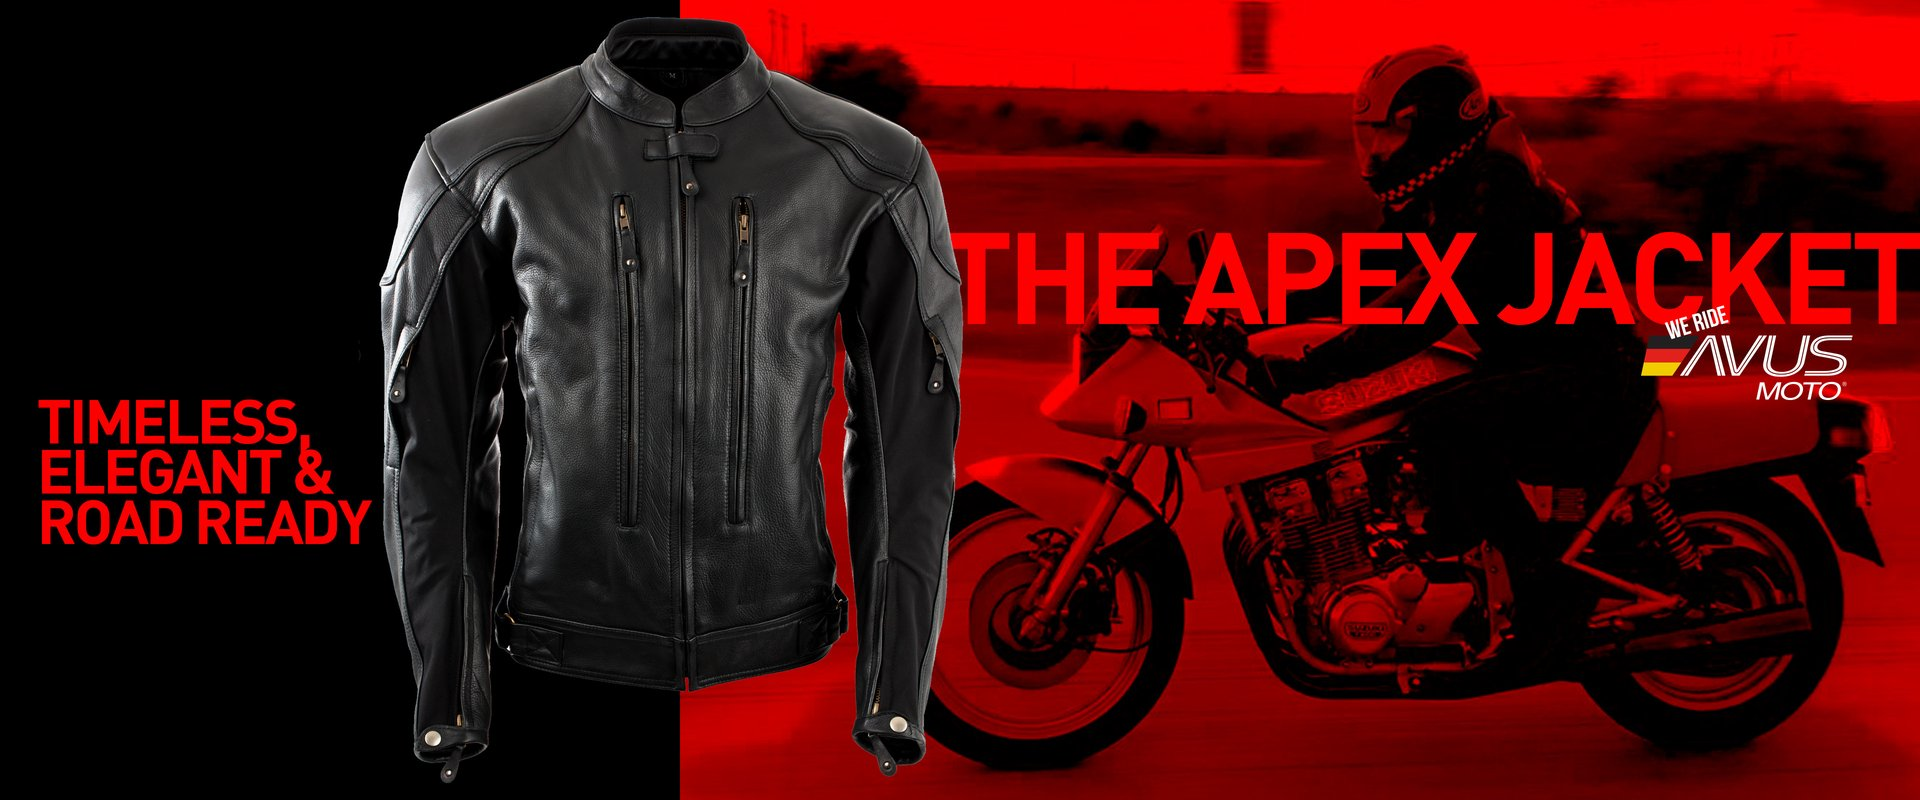 Clothing and accessories for motorcyclists